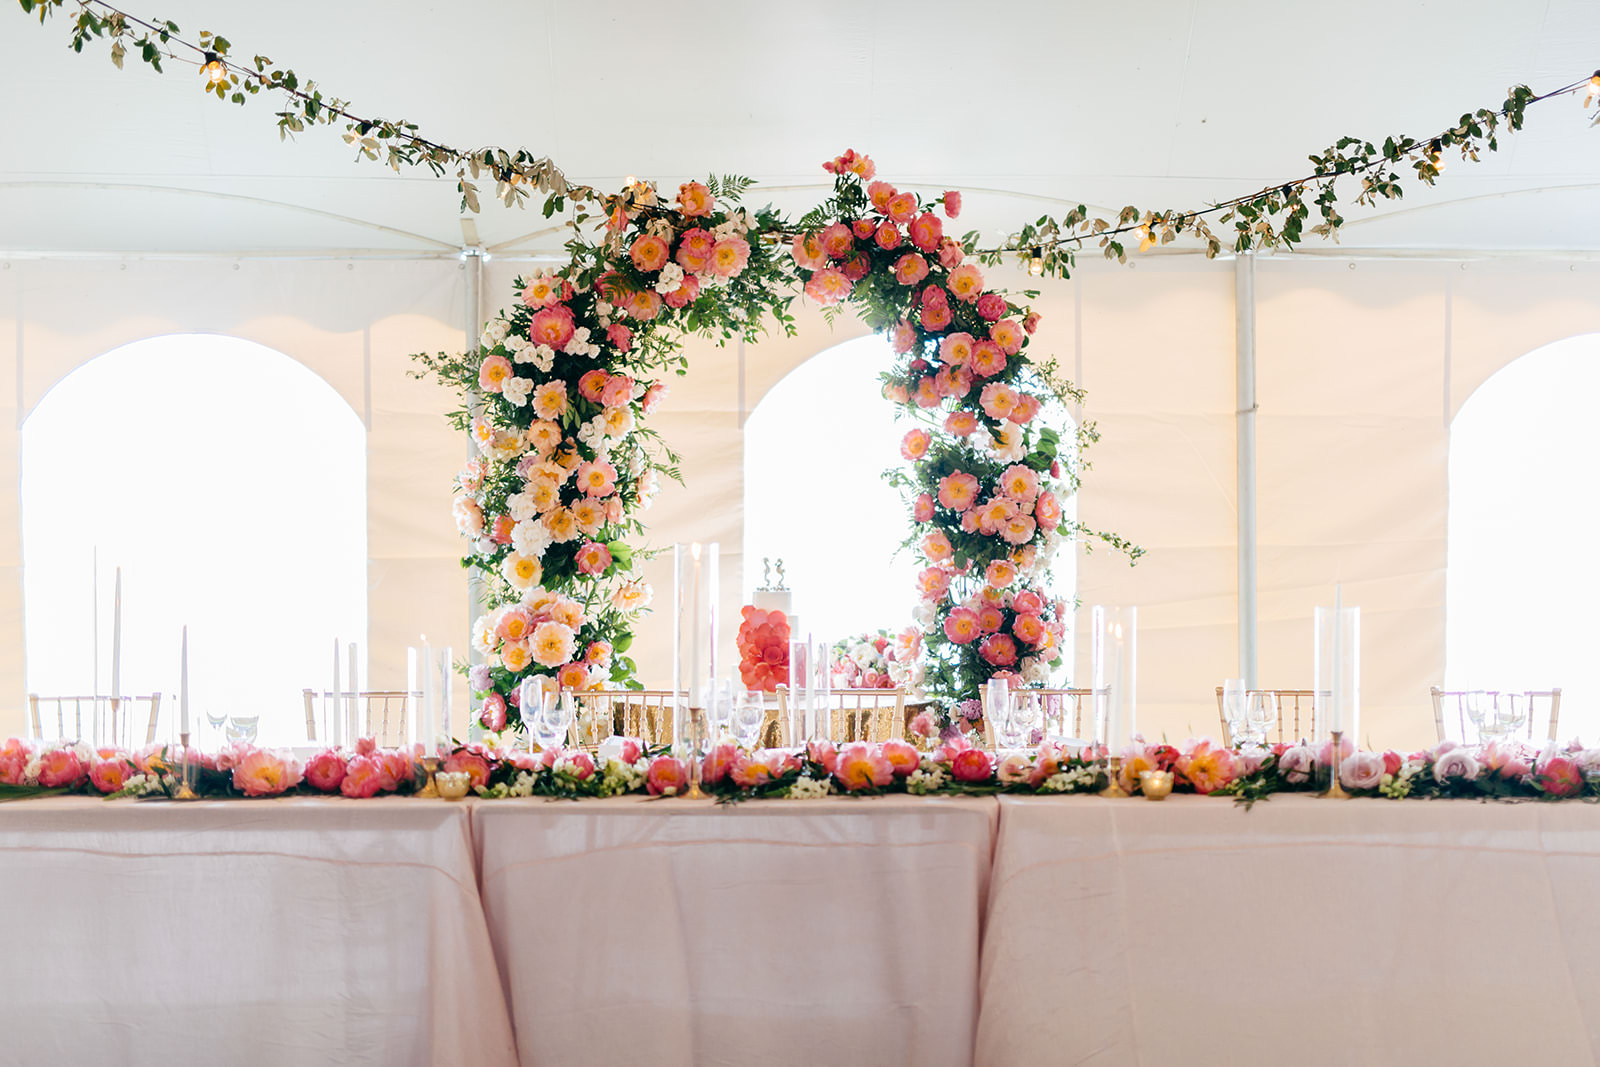 Elegant Tropical Tent Wedding Reception Decor, Lush Coral, Pink and Palm Tree Leaves Lush Floral Arch Behind Sweetheart Table, Hanging Flowers   Tampa Bay Wedding Planner NK Weddings